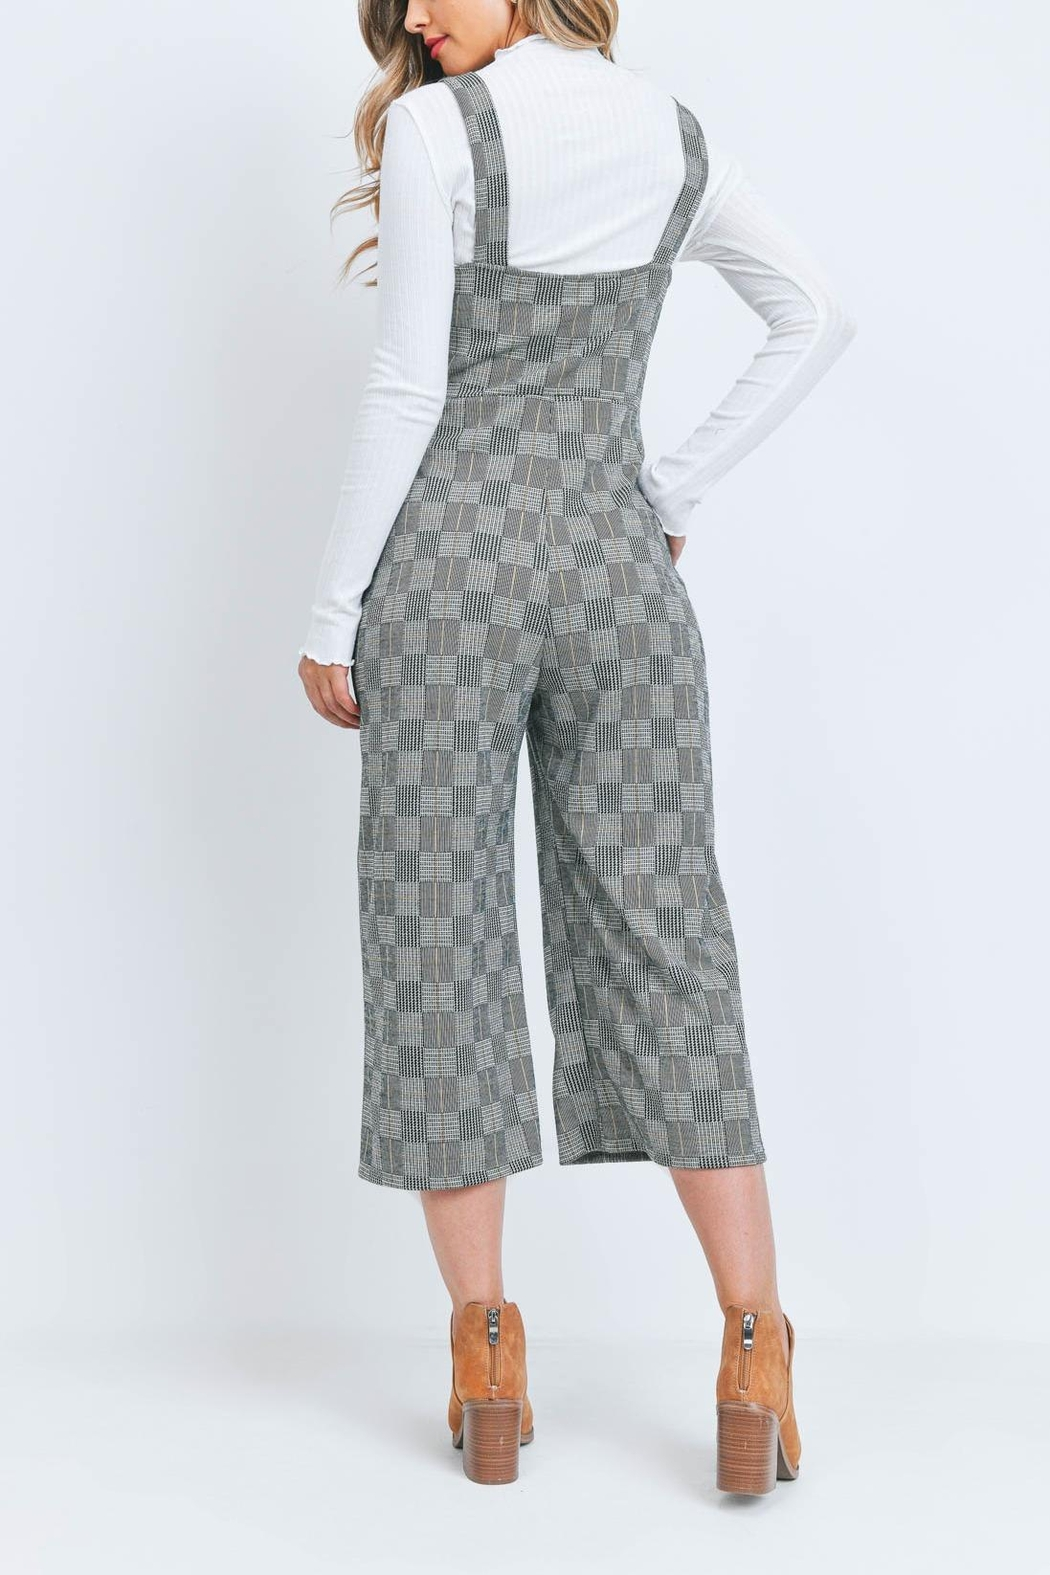 Riah Fashion Black-Checkered-Jumpsuit - Front Full Image